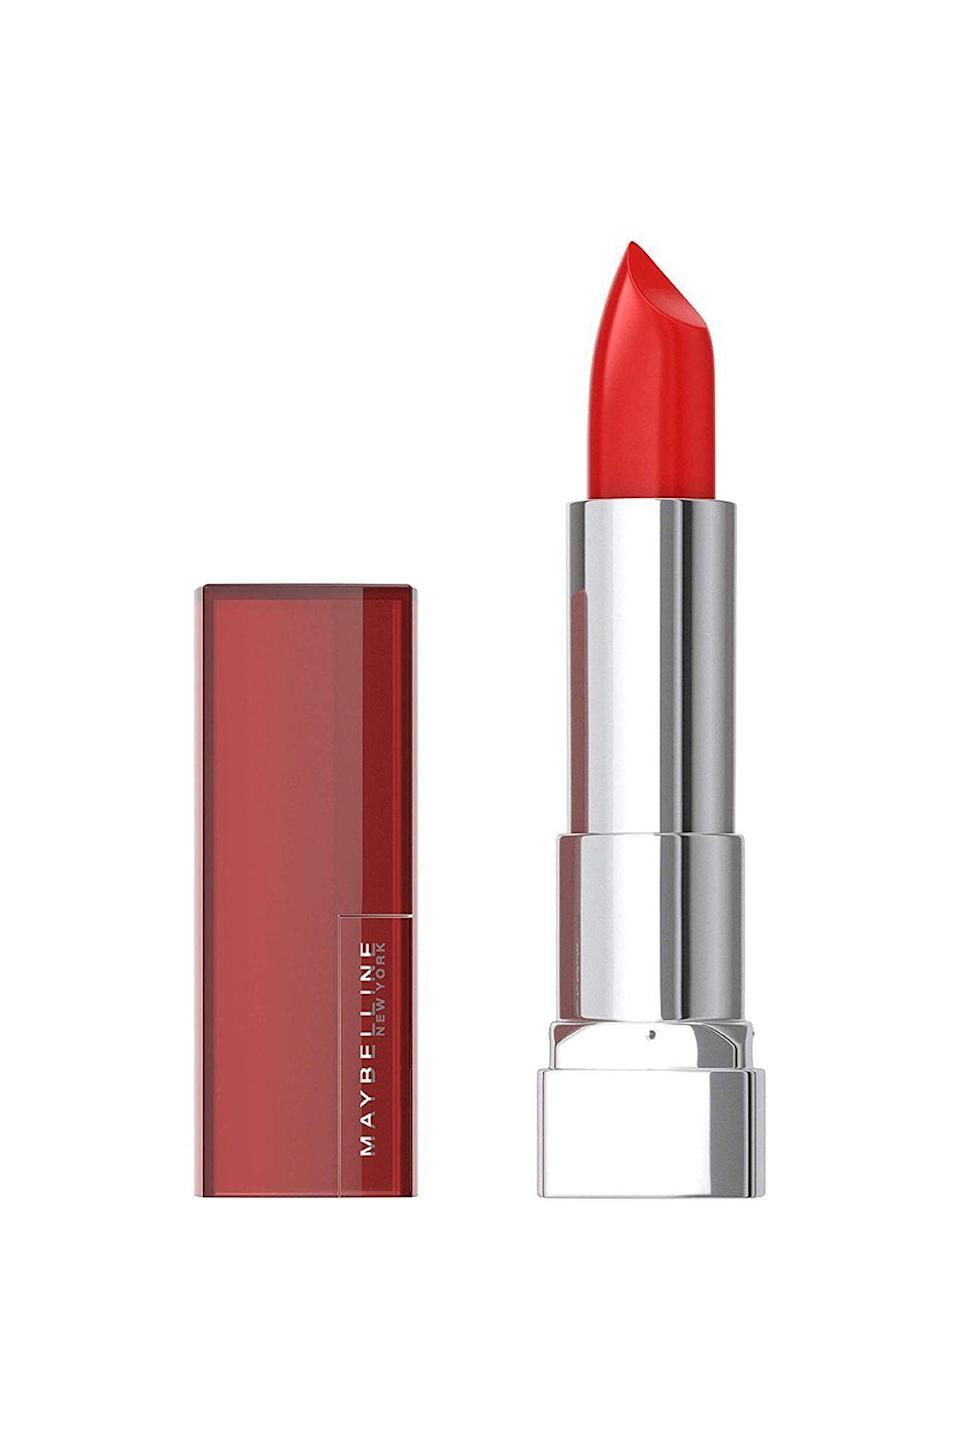 "<p><strong>Maybelline New York</strong></p><p>amazon.com</p><p><strong>$5.62</strong></p><p><a href=""https://www.amazon.com/dp/B002LFLQ8W?tag=syn-yahoo-20&ascsubtag=%5Bartid%7C10072.g.34963135%5Bsrc%7Cyahoo-us"" rel=""nofollow noopener"" target=""_blank"" data-ylk=""slk:Shop Now"" class=""link rapid-noclick-resp"">Shop Now</a></p><p>Need a pick-me-up that's just as strong as your morning cup of coffee? Enter Maybelline's Color Sensational Lipstick in Red Revival. One swipe of the creamy, dreamy drugstore formula (which, honestly, is just as good as the designer stuff ) coats your lips in hydrating shea butter, as well as a rich, deep red shade that'll brighten any complexion.</p>"